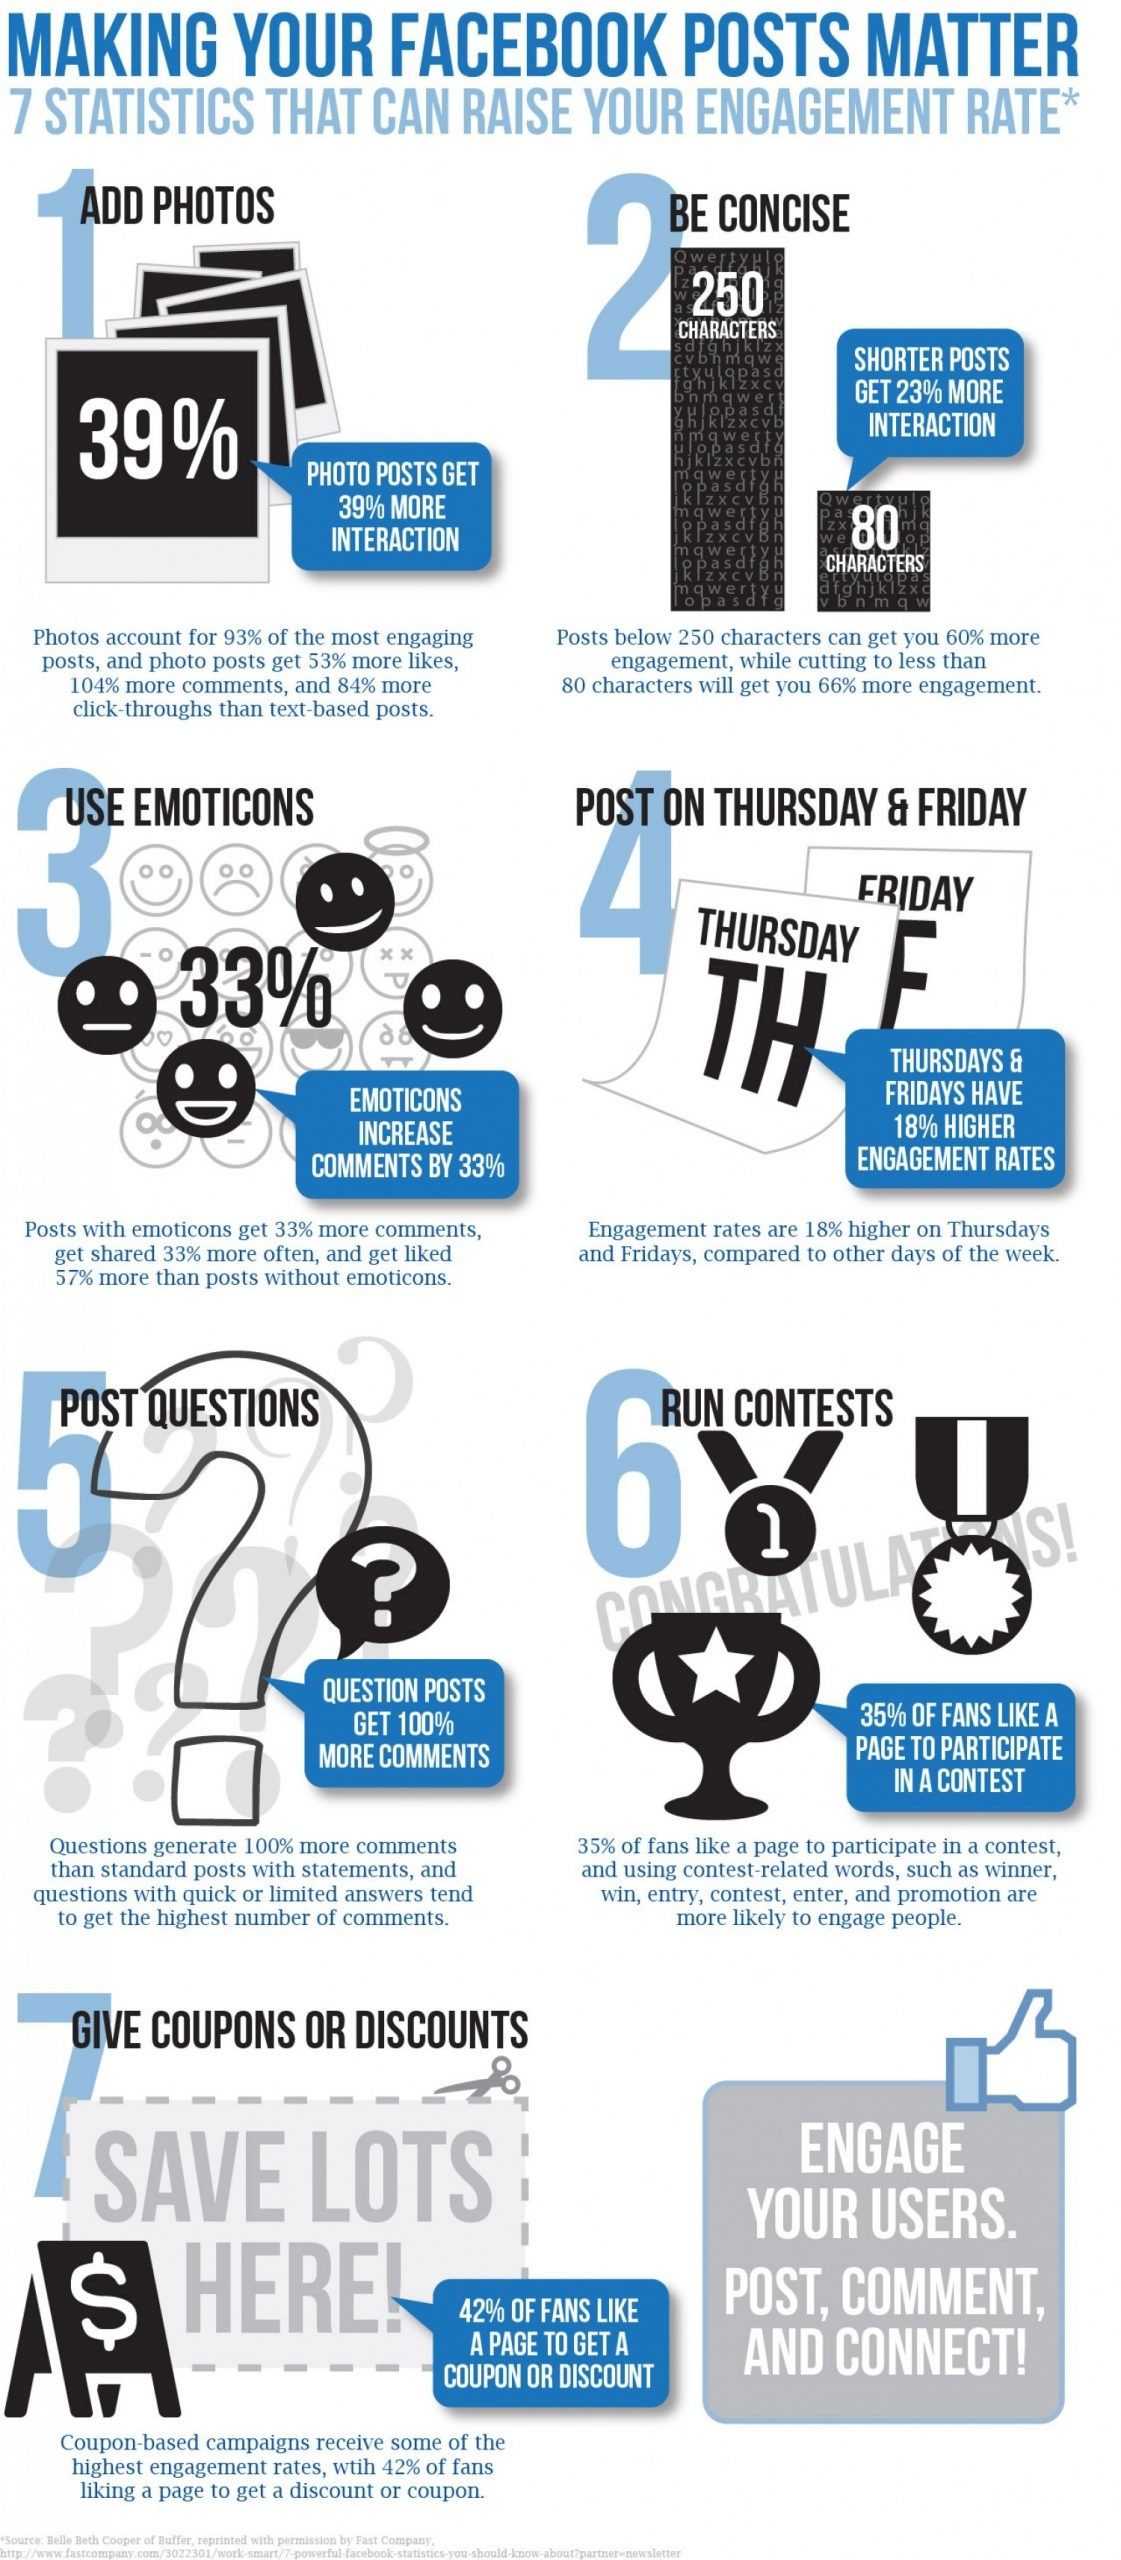 Making Your Facebook Posts Matter Infographic